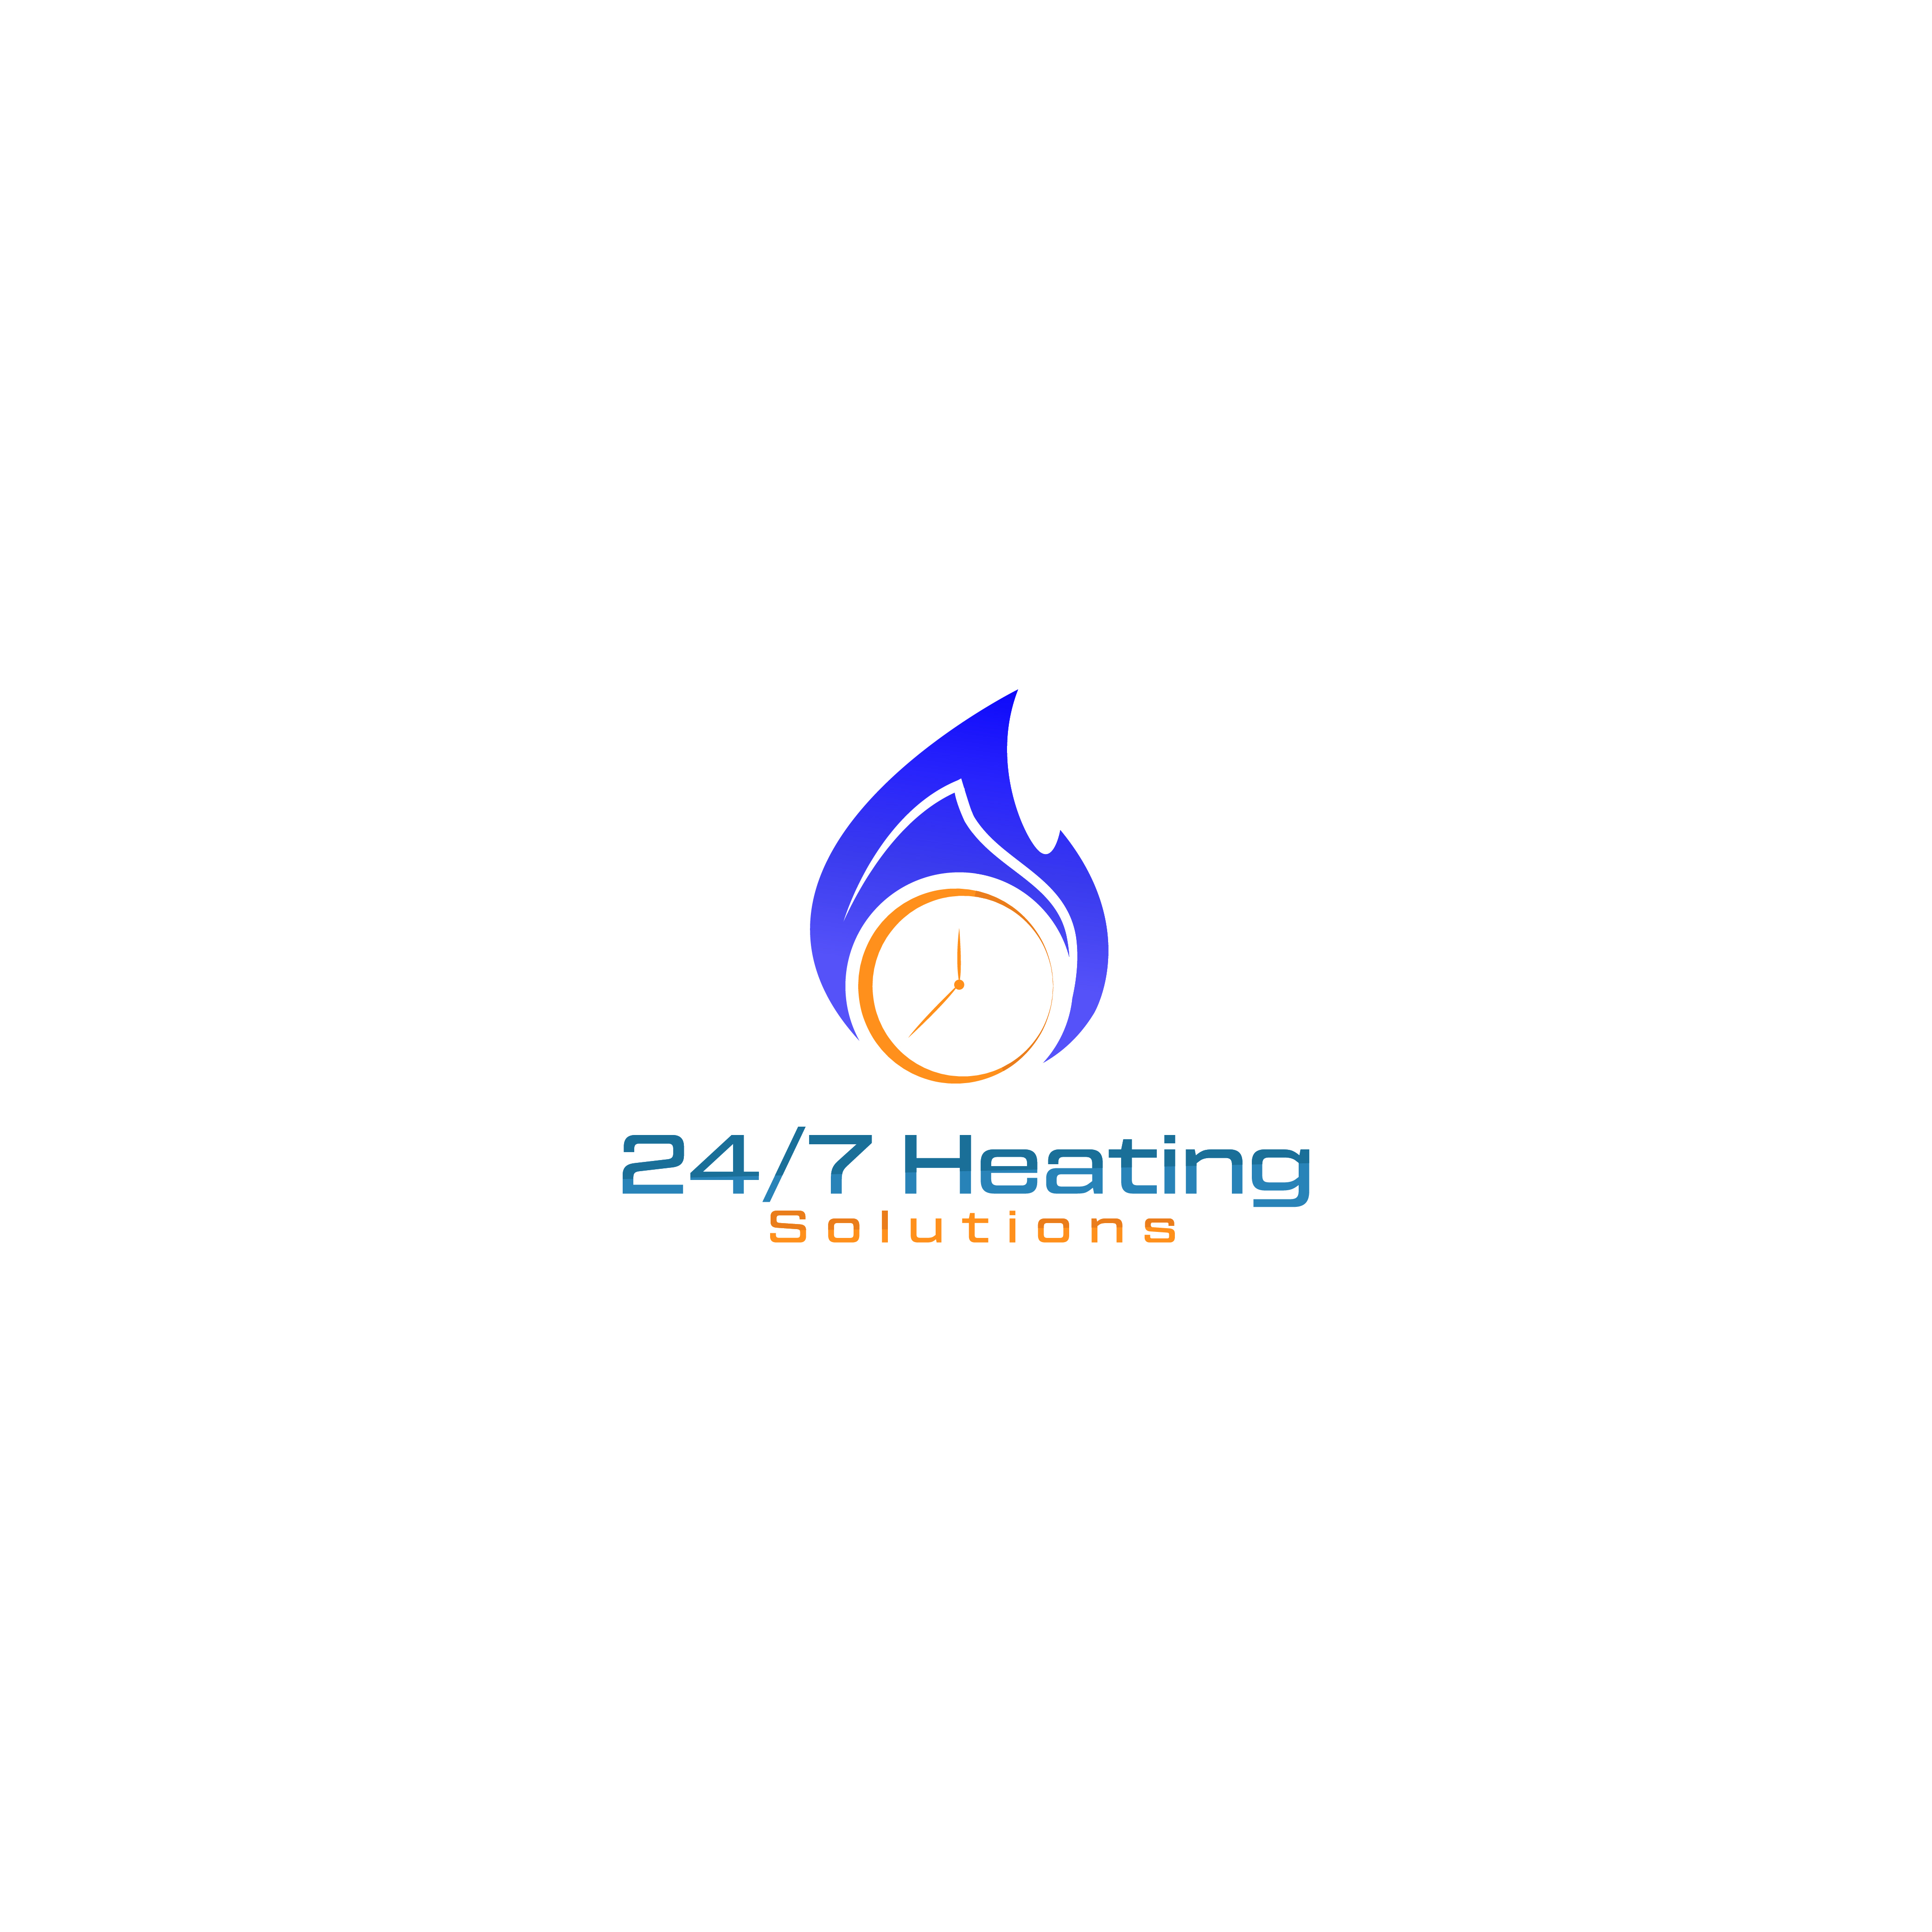 24/7 Heating Solutions Verified Logo